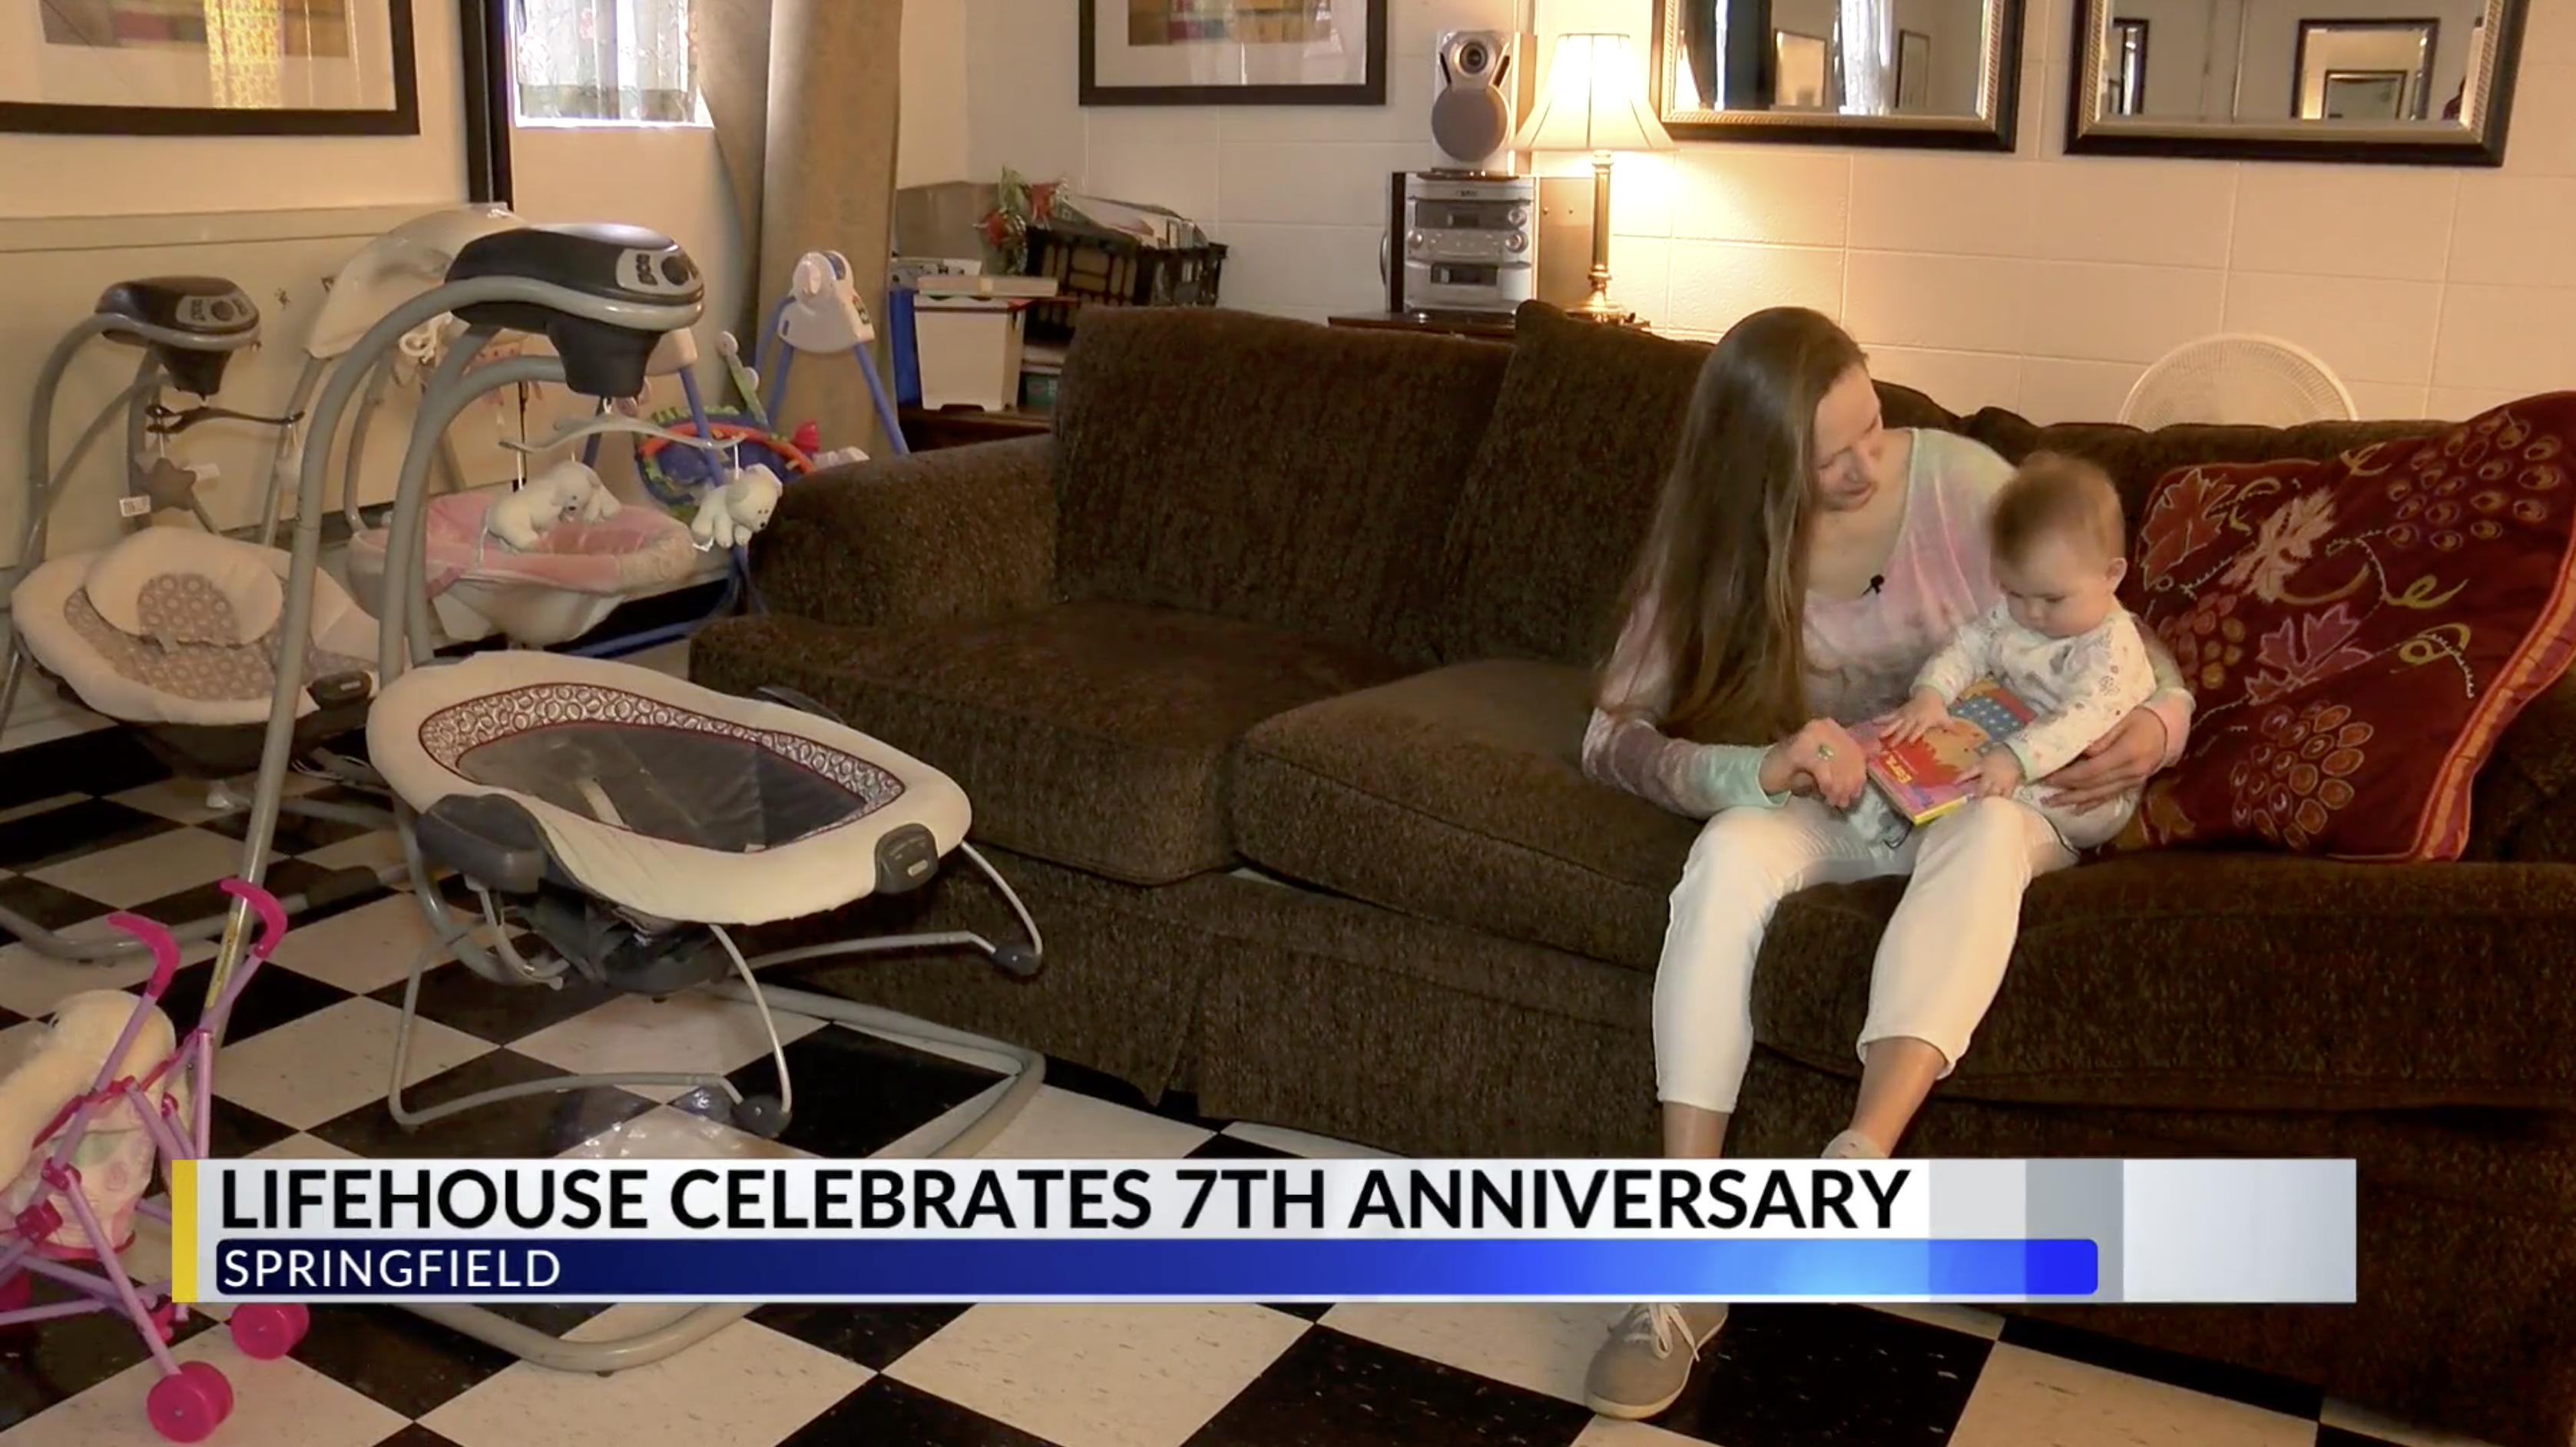 IN THE NEWS - LifeHouse Crisis Maternity Home celebrates 7th anniversary